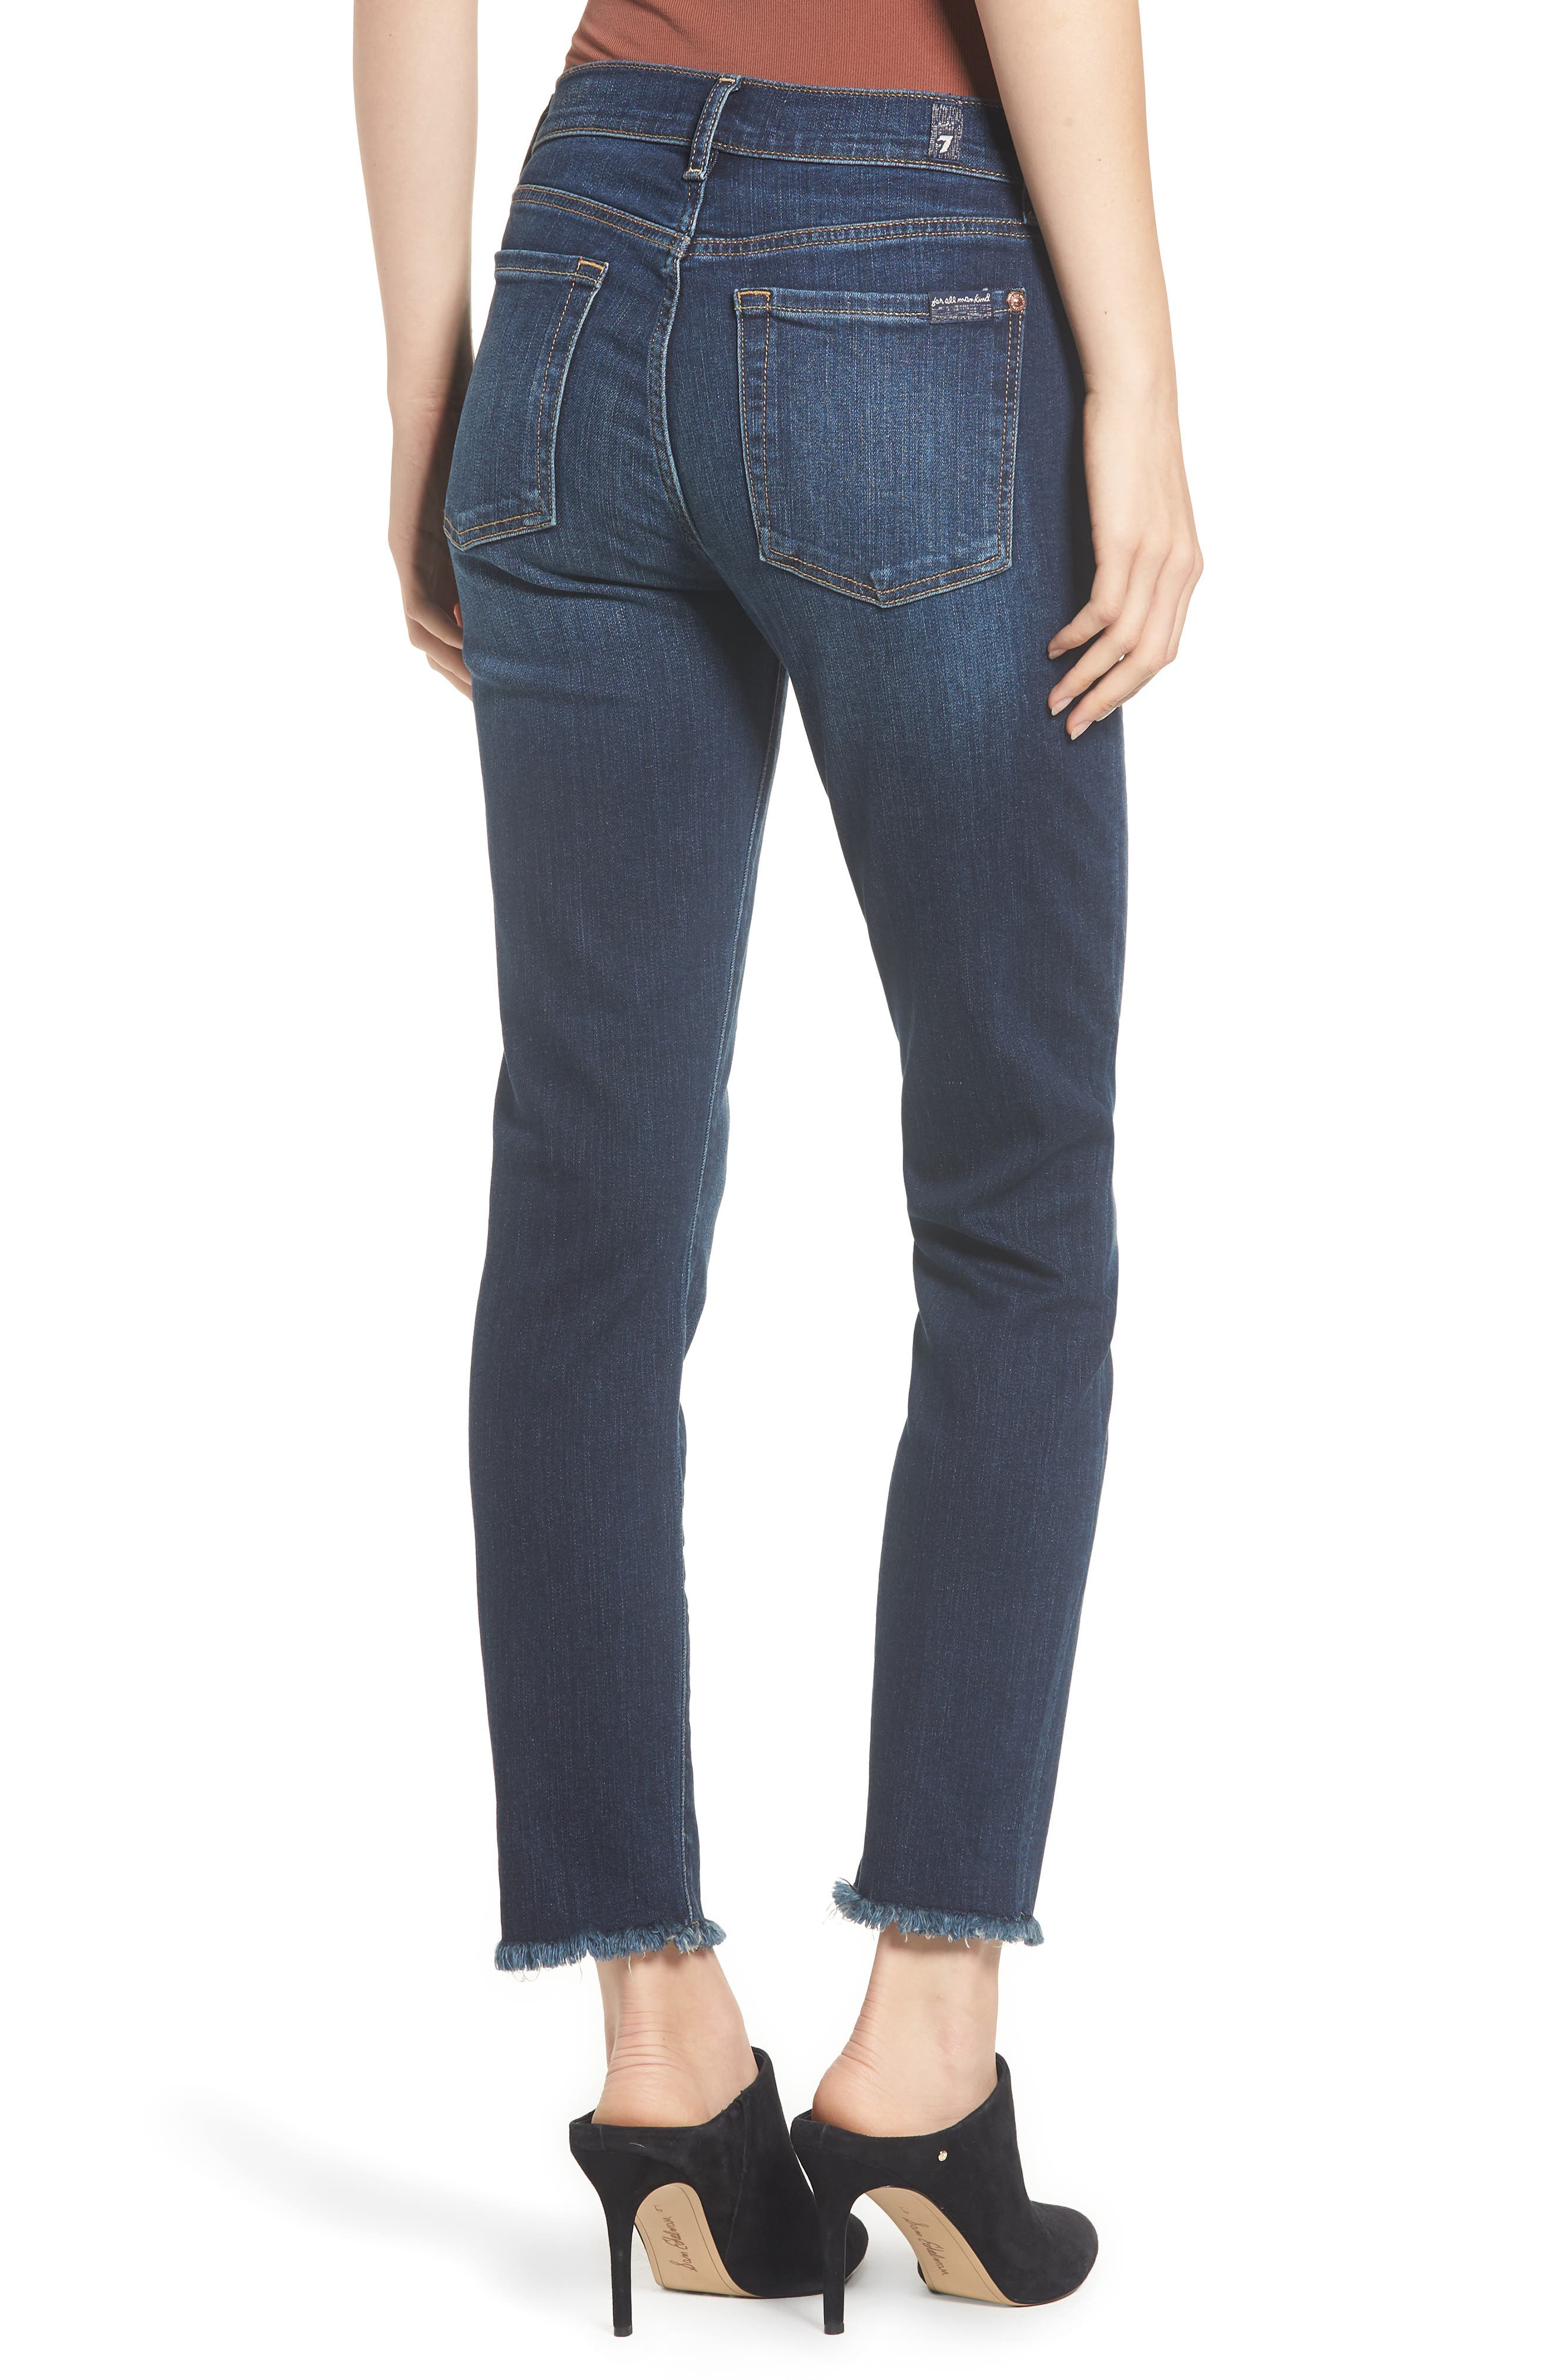 b(air) Roxanne Frayed Ankle Slim Jeans,                             Alternate thumbnail 2, color,                             AUTHENTIC FATE